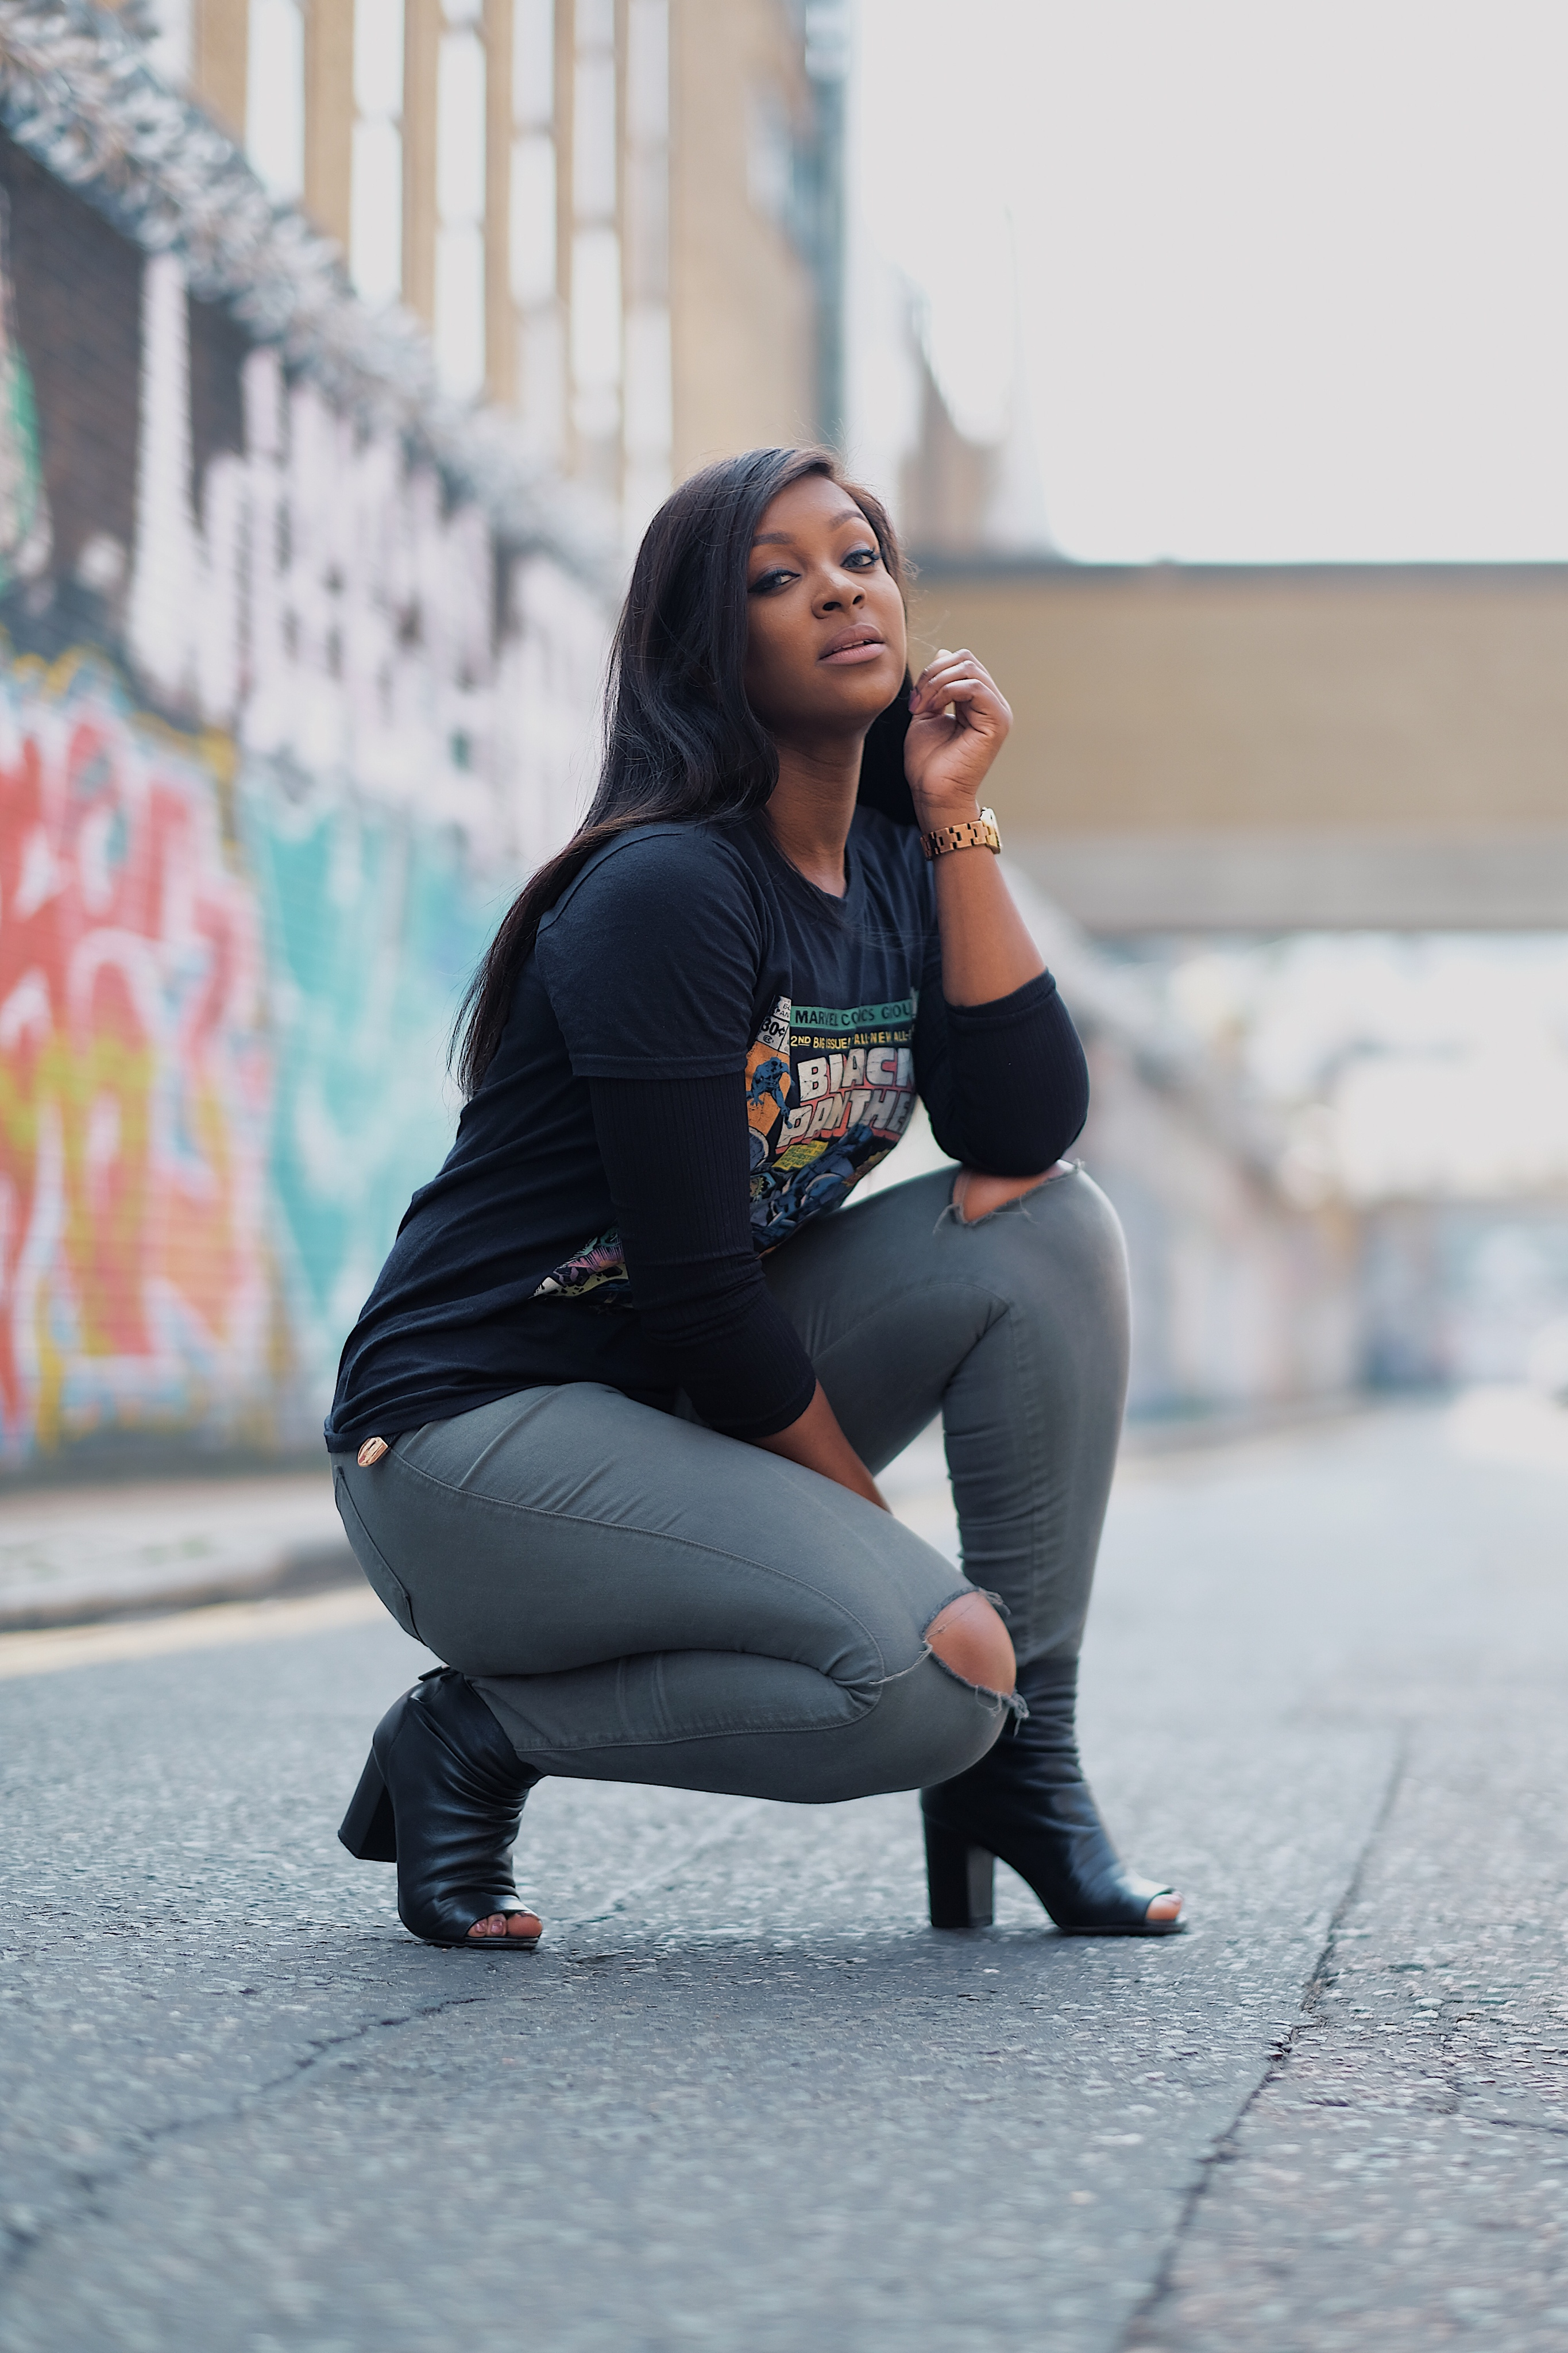 raychel-says-black-panther-tshirt-black-comic-tshirt-grey-jeans-fashionova-graffiti